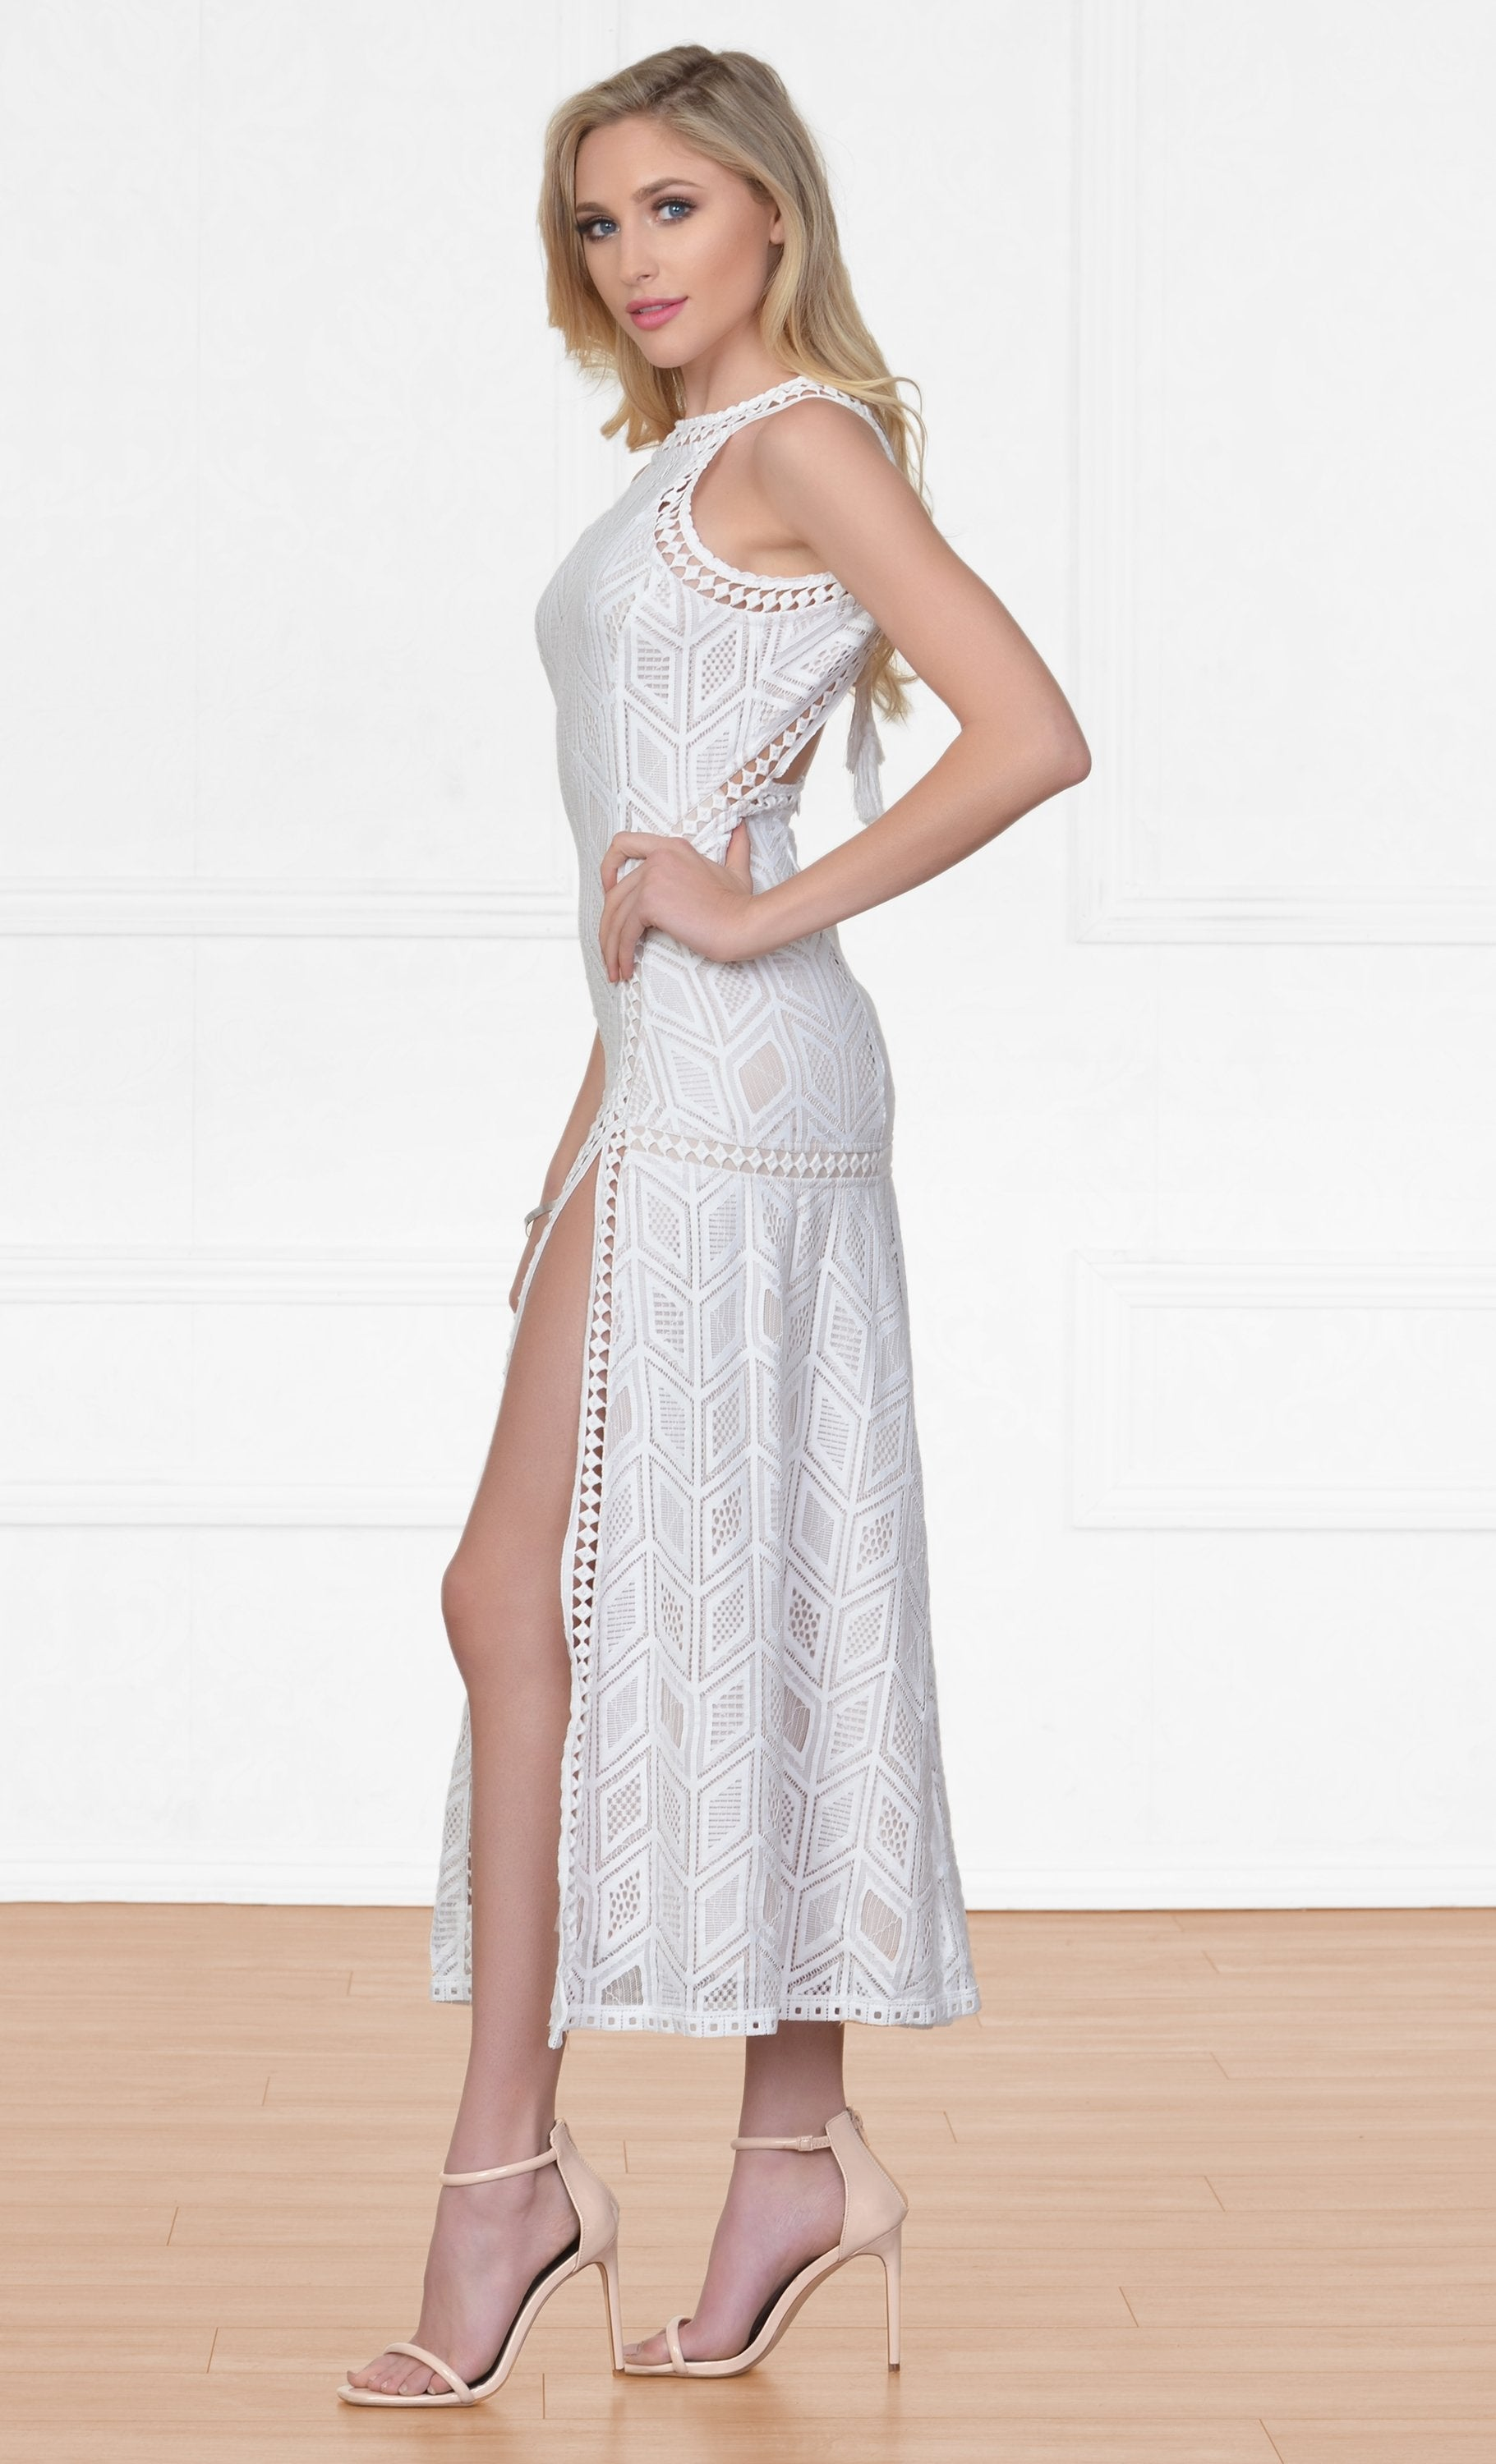 d97a84e30a Indie XO Nowhere To Hide Off White Sleeveless Halter Cut Out Geometric Lace  Crochet Double Slit